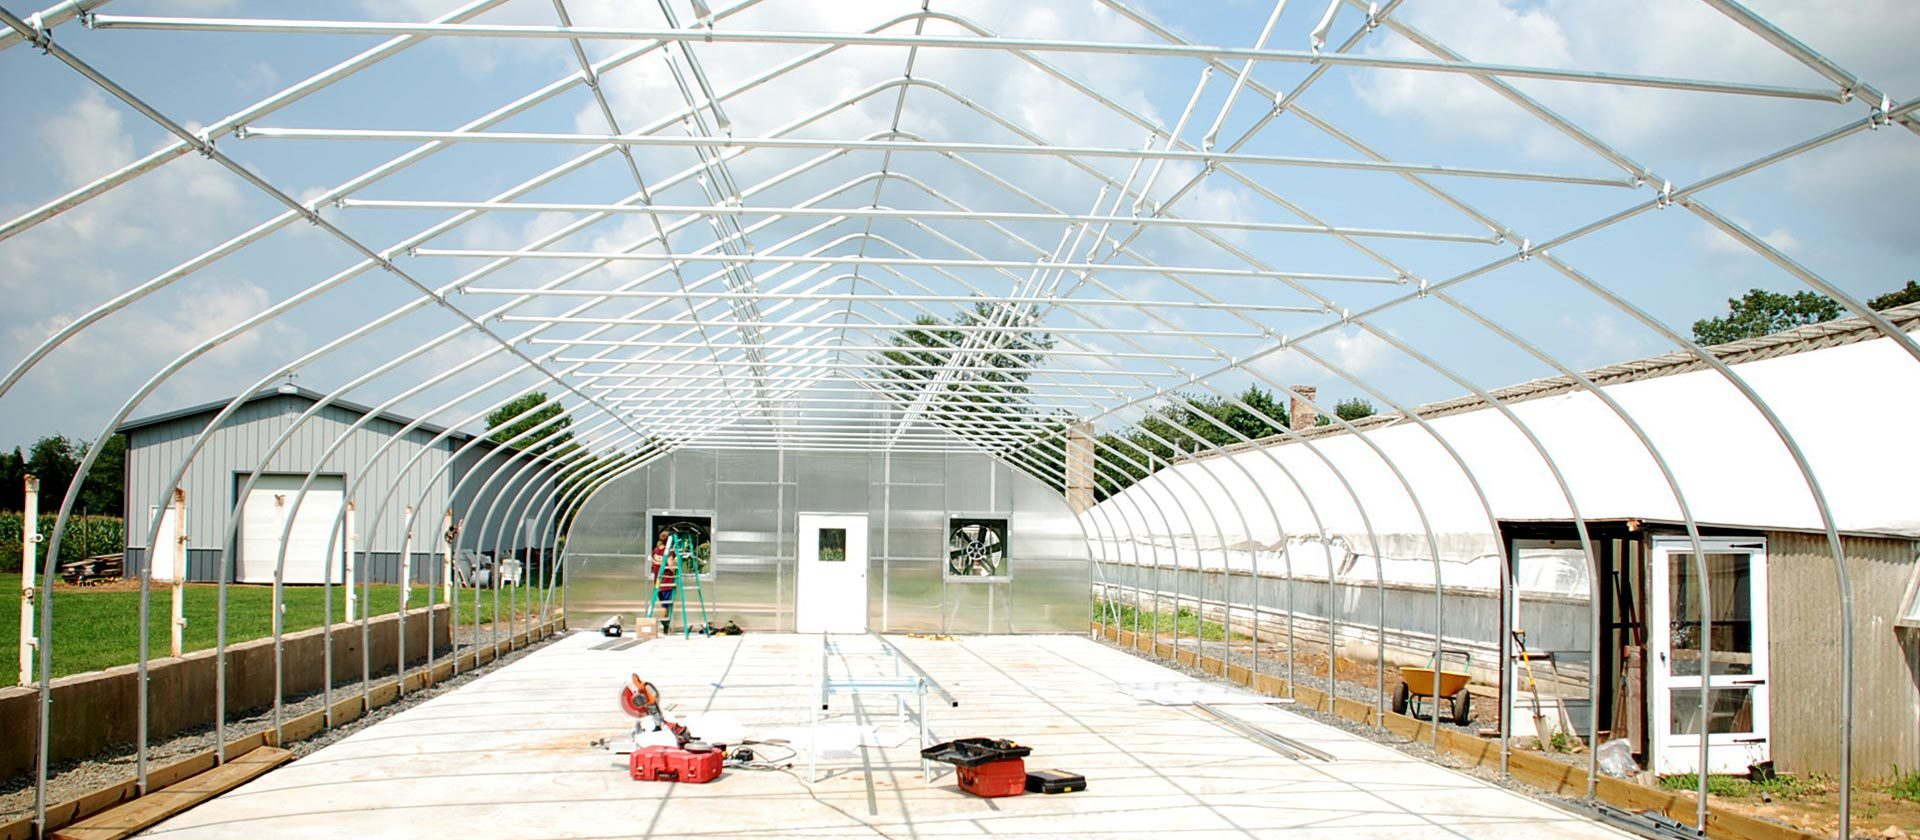 Greenhouses for Cannabis Production by Rimol